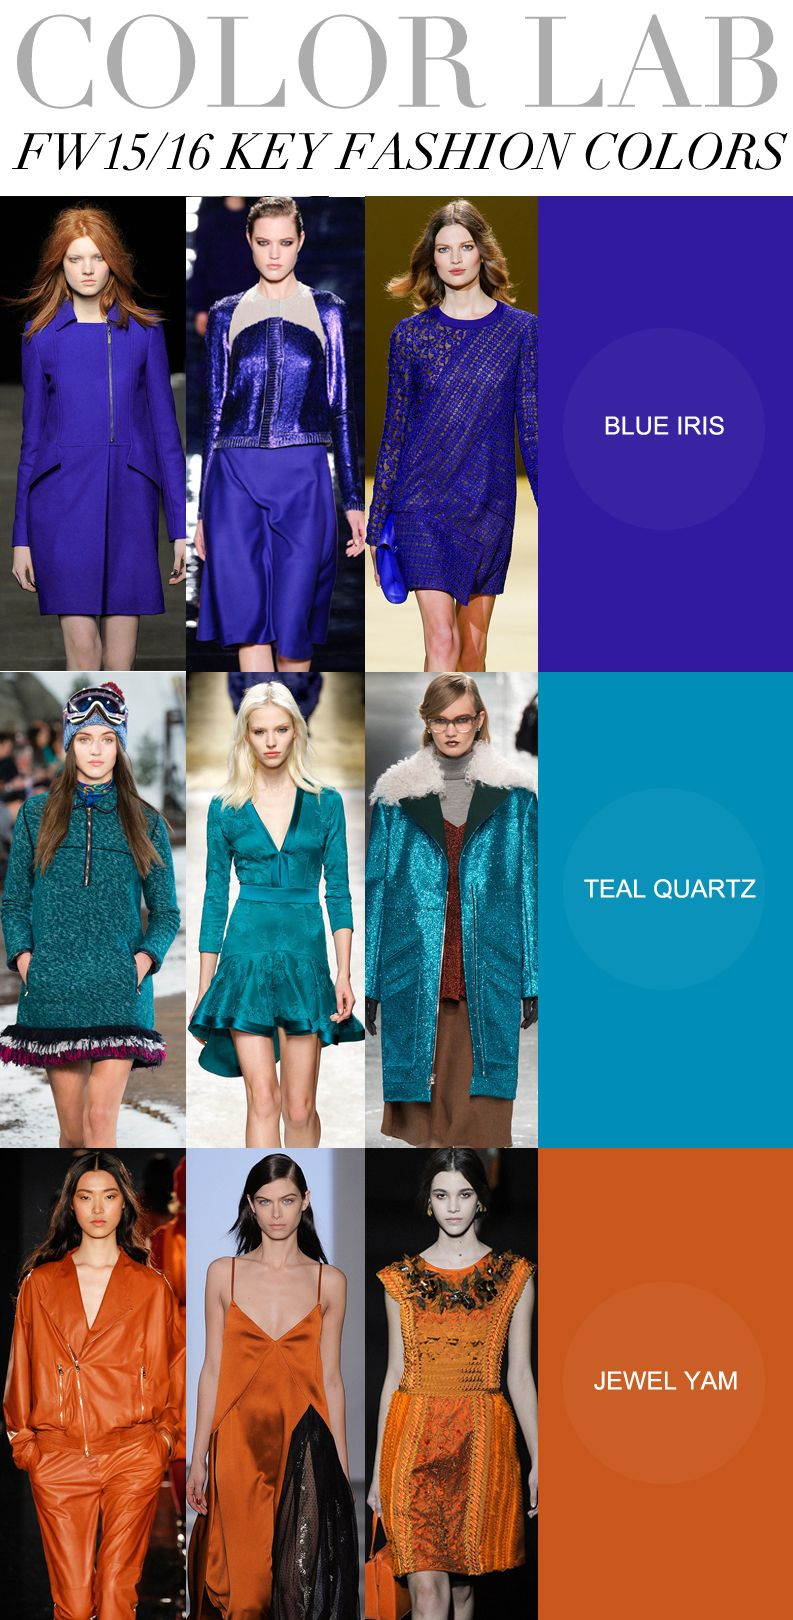 TREND COUNCIL Fall/Winter 2015- KEY COLORS